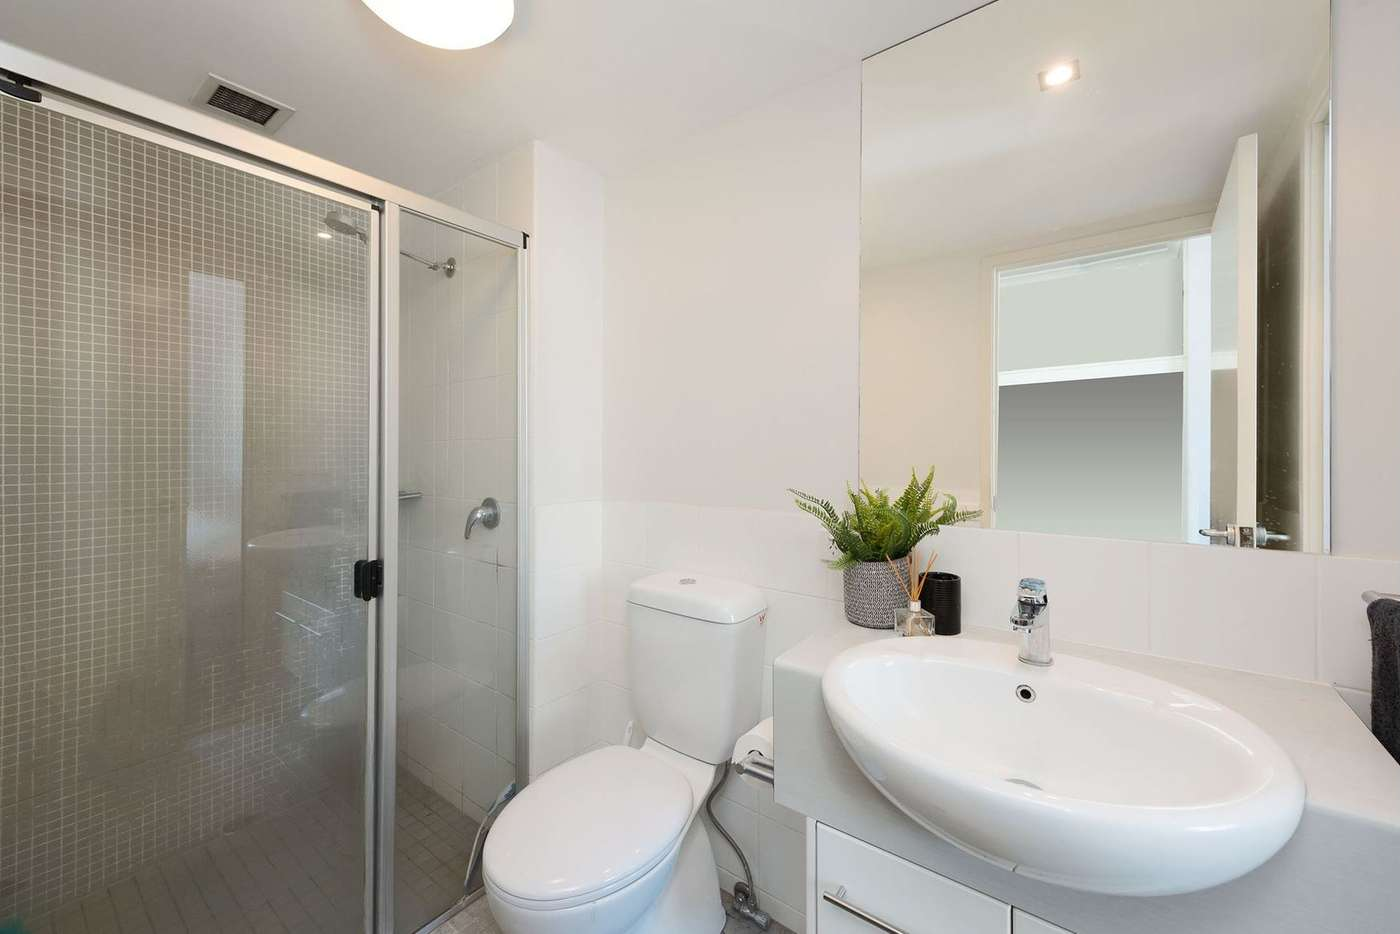 Sixth view of Homely apartment listing, 69/2 Campbell Street, Toowong QLD 4066